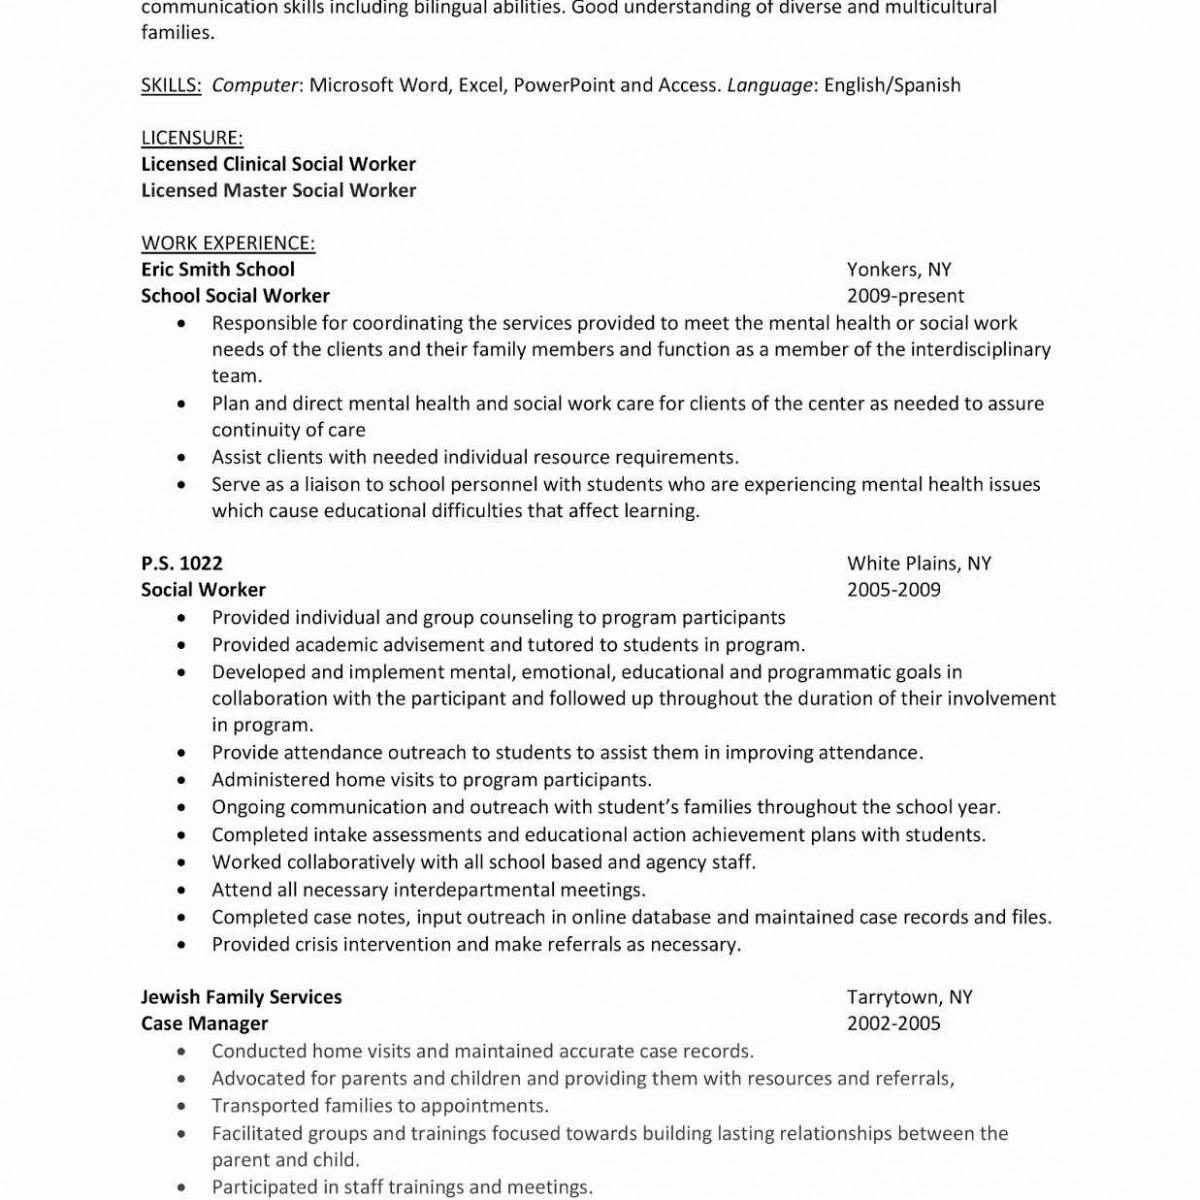 Dog Walker Resume Sample - Dog Walker Resume Fresh Dog Sitter Resume Best Captivating